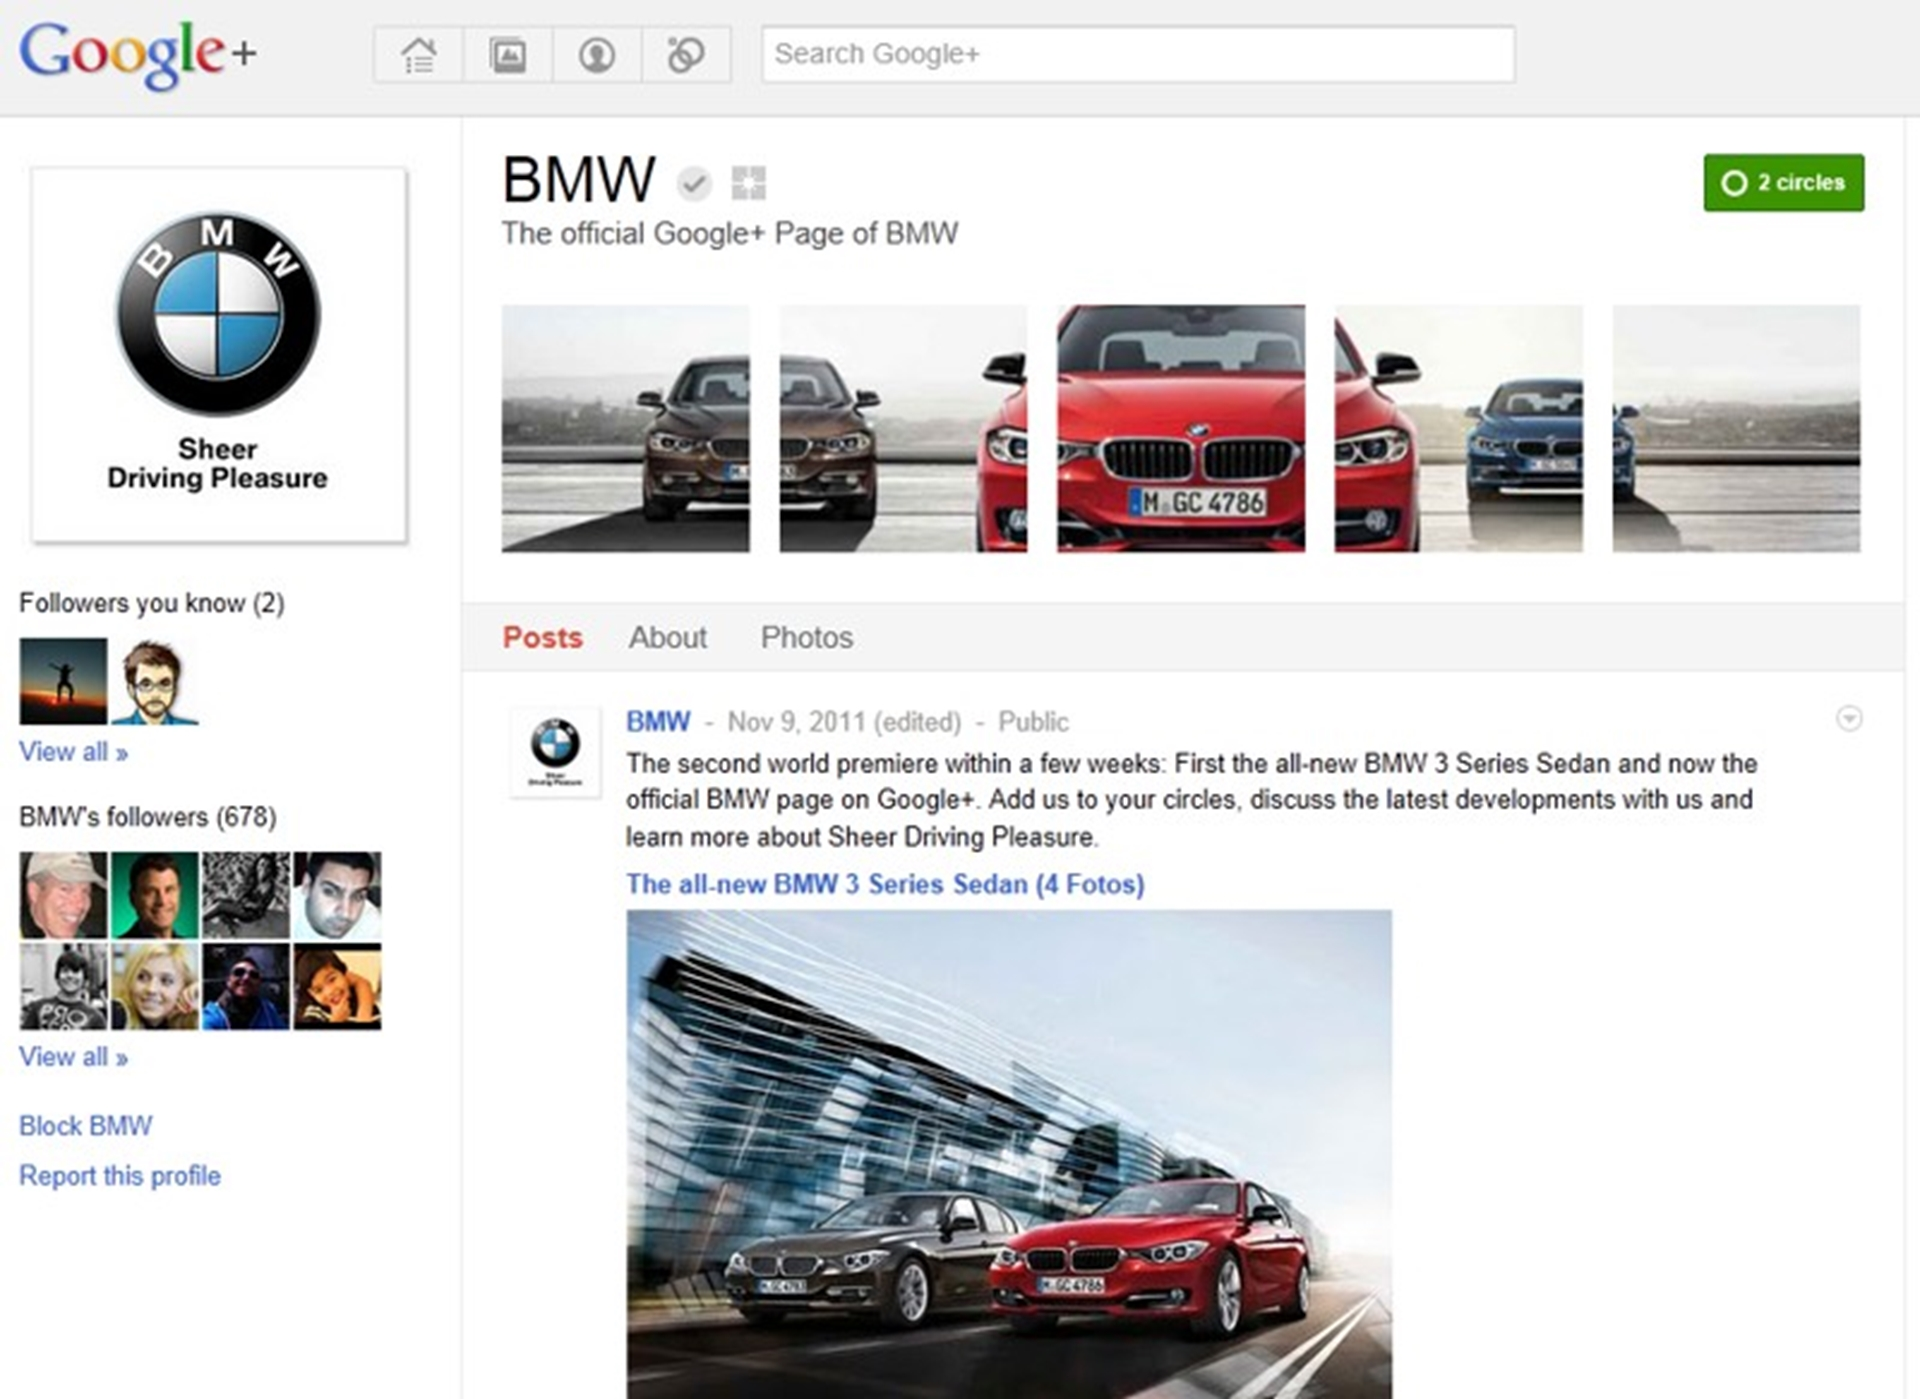 bmw-on-google-plus